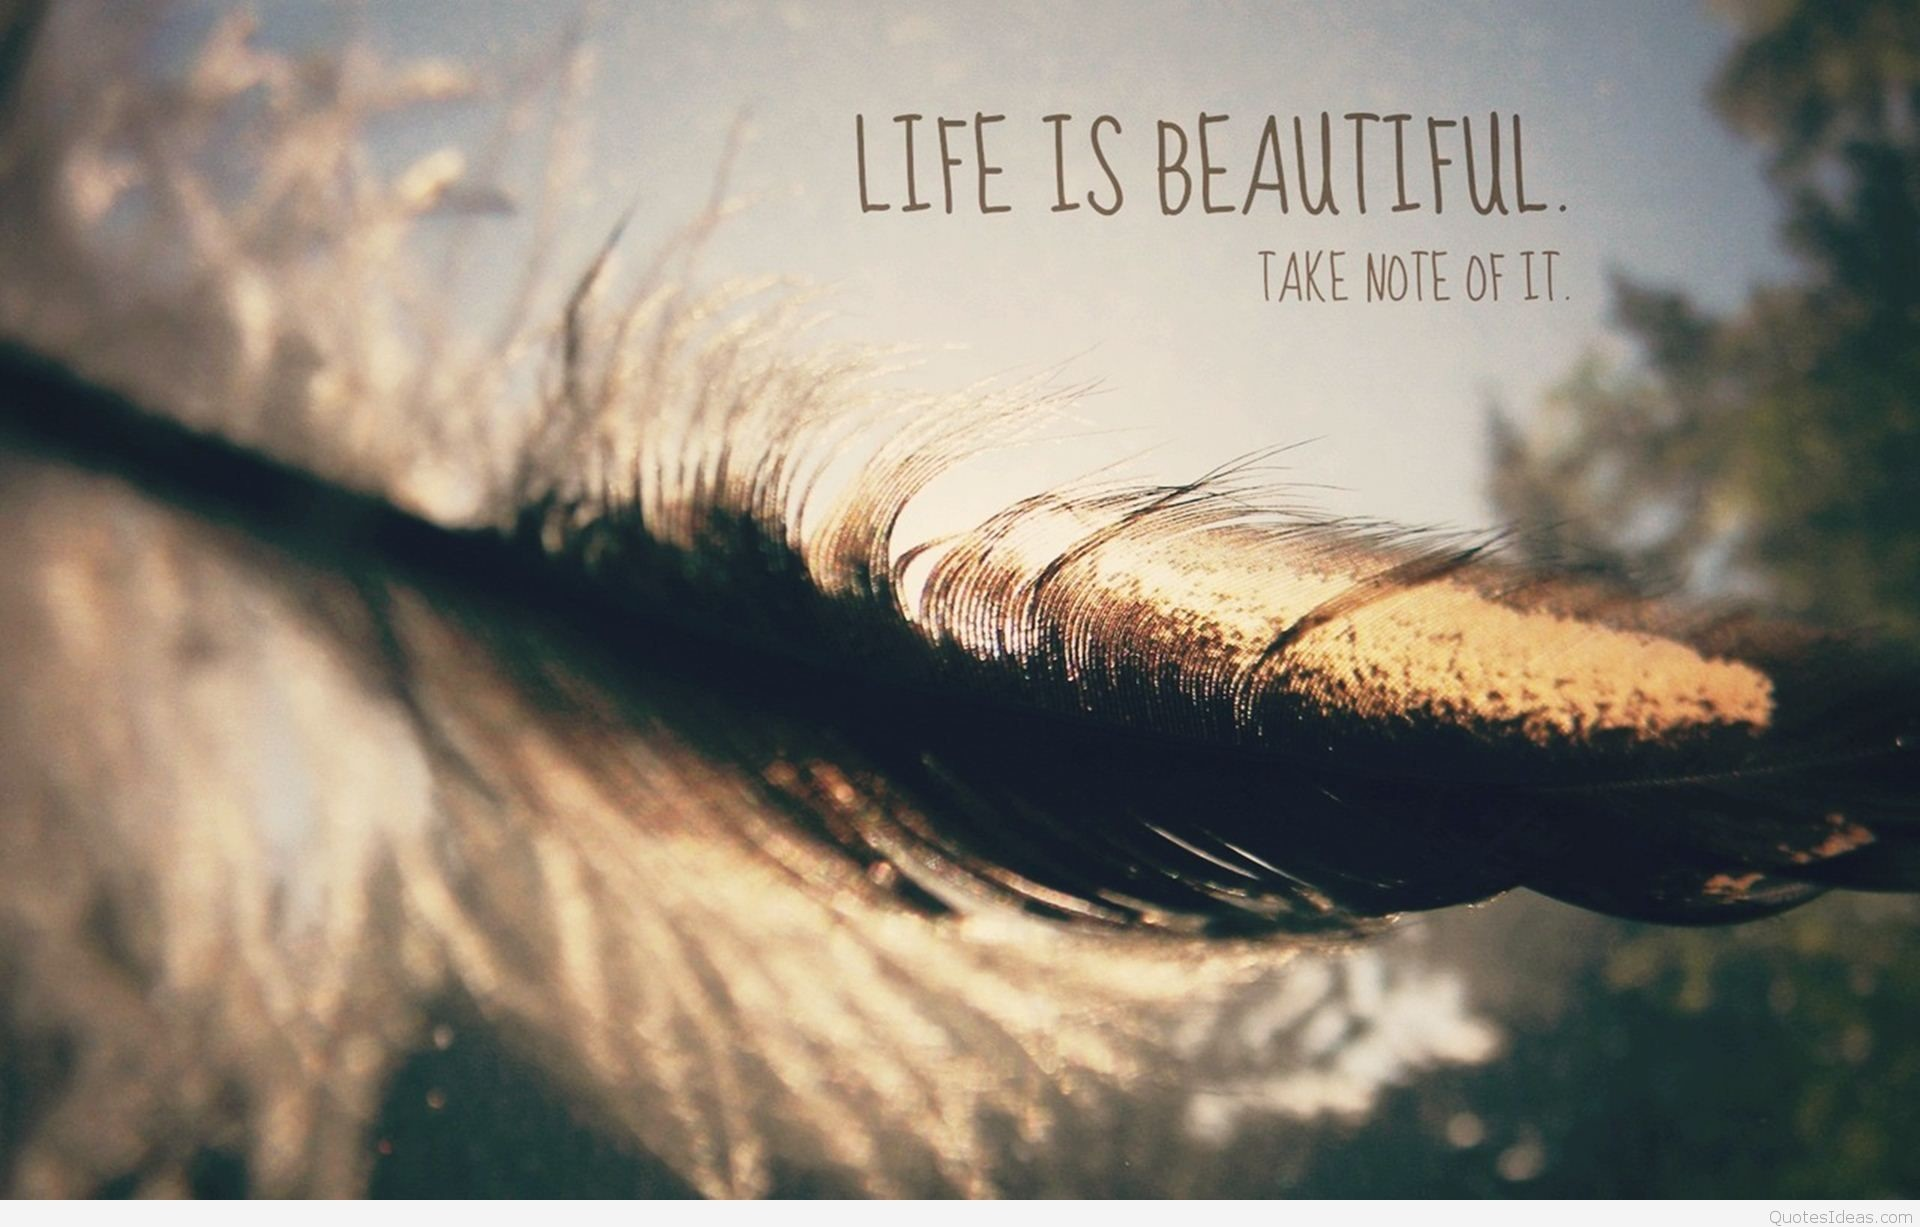 1920x1227 ... Life is beautiful HD wallpaper with quote